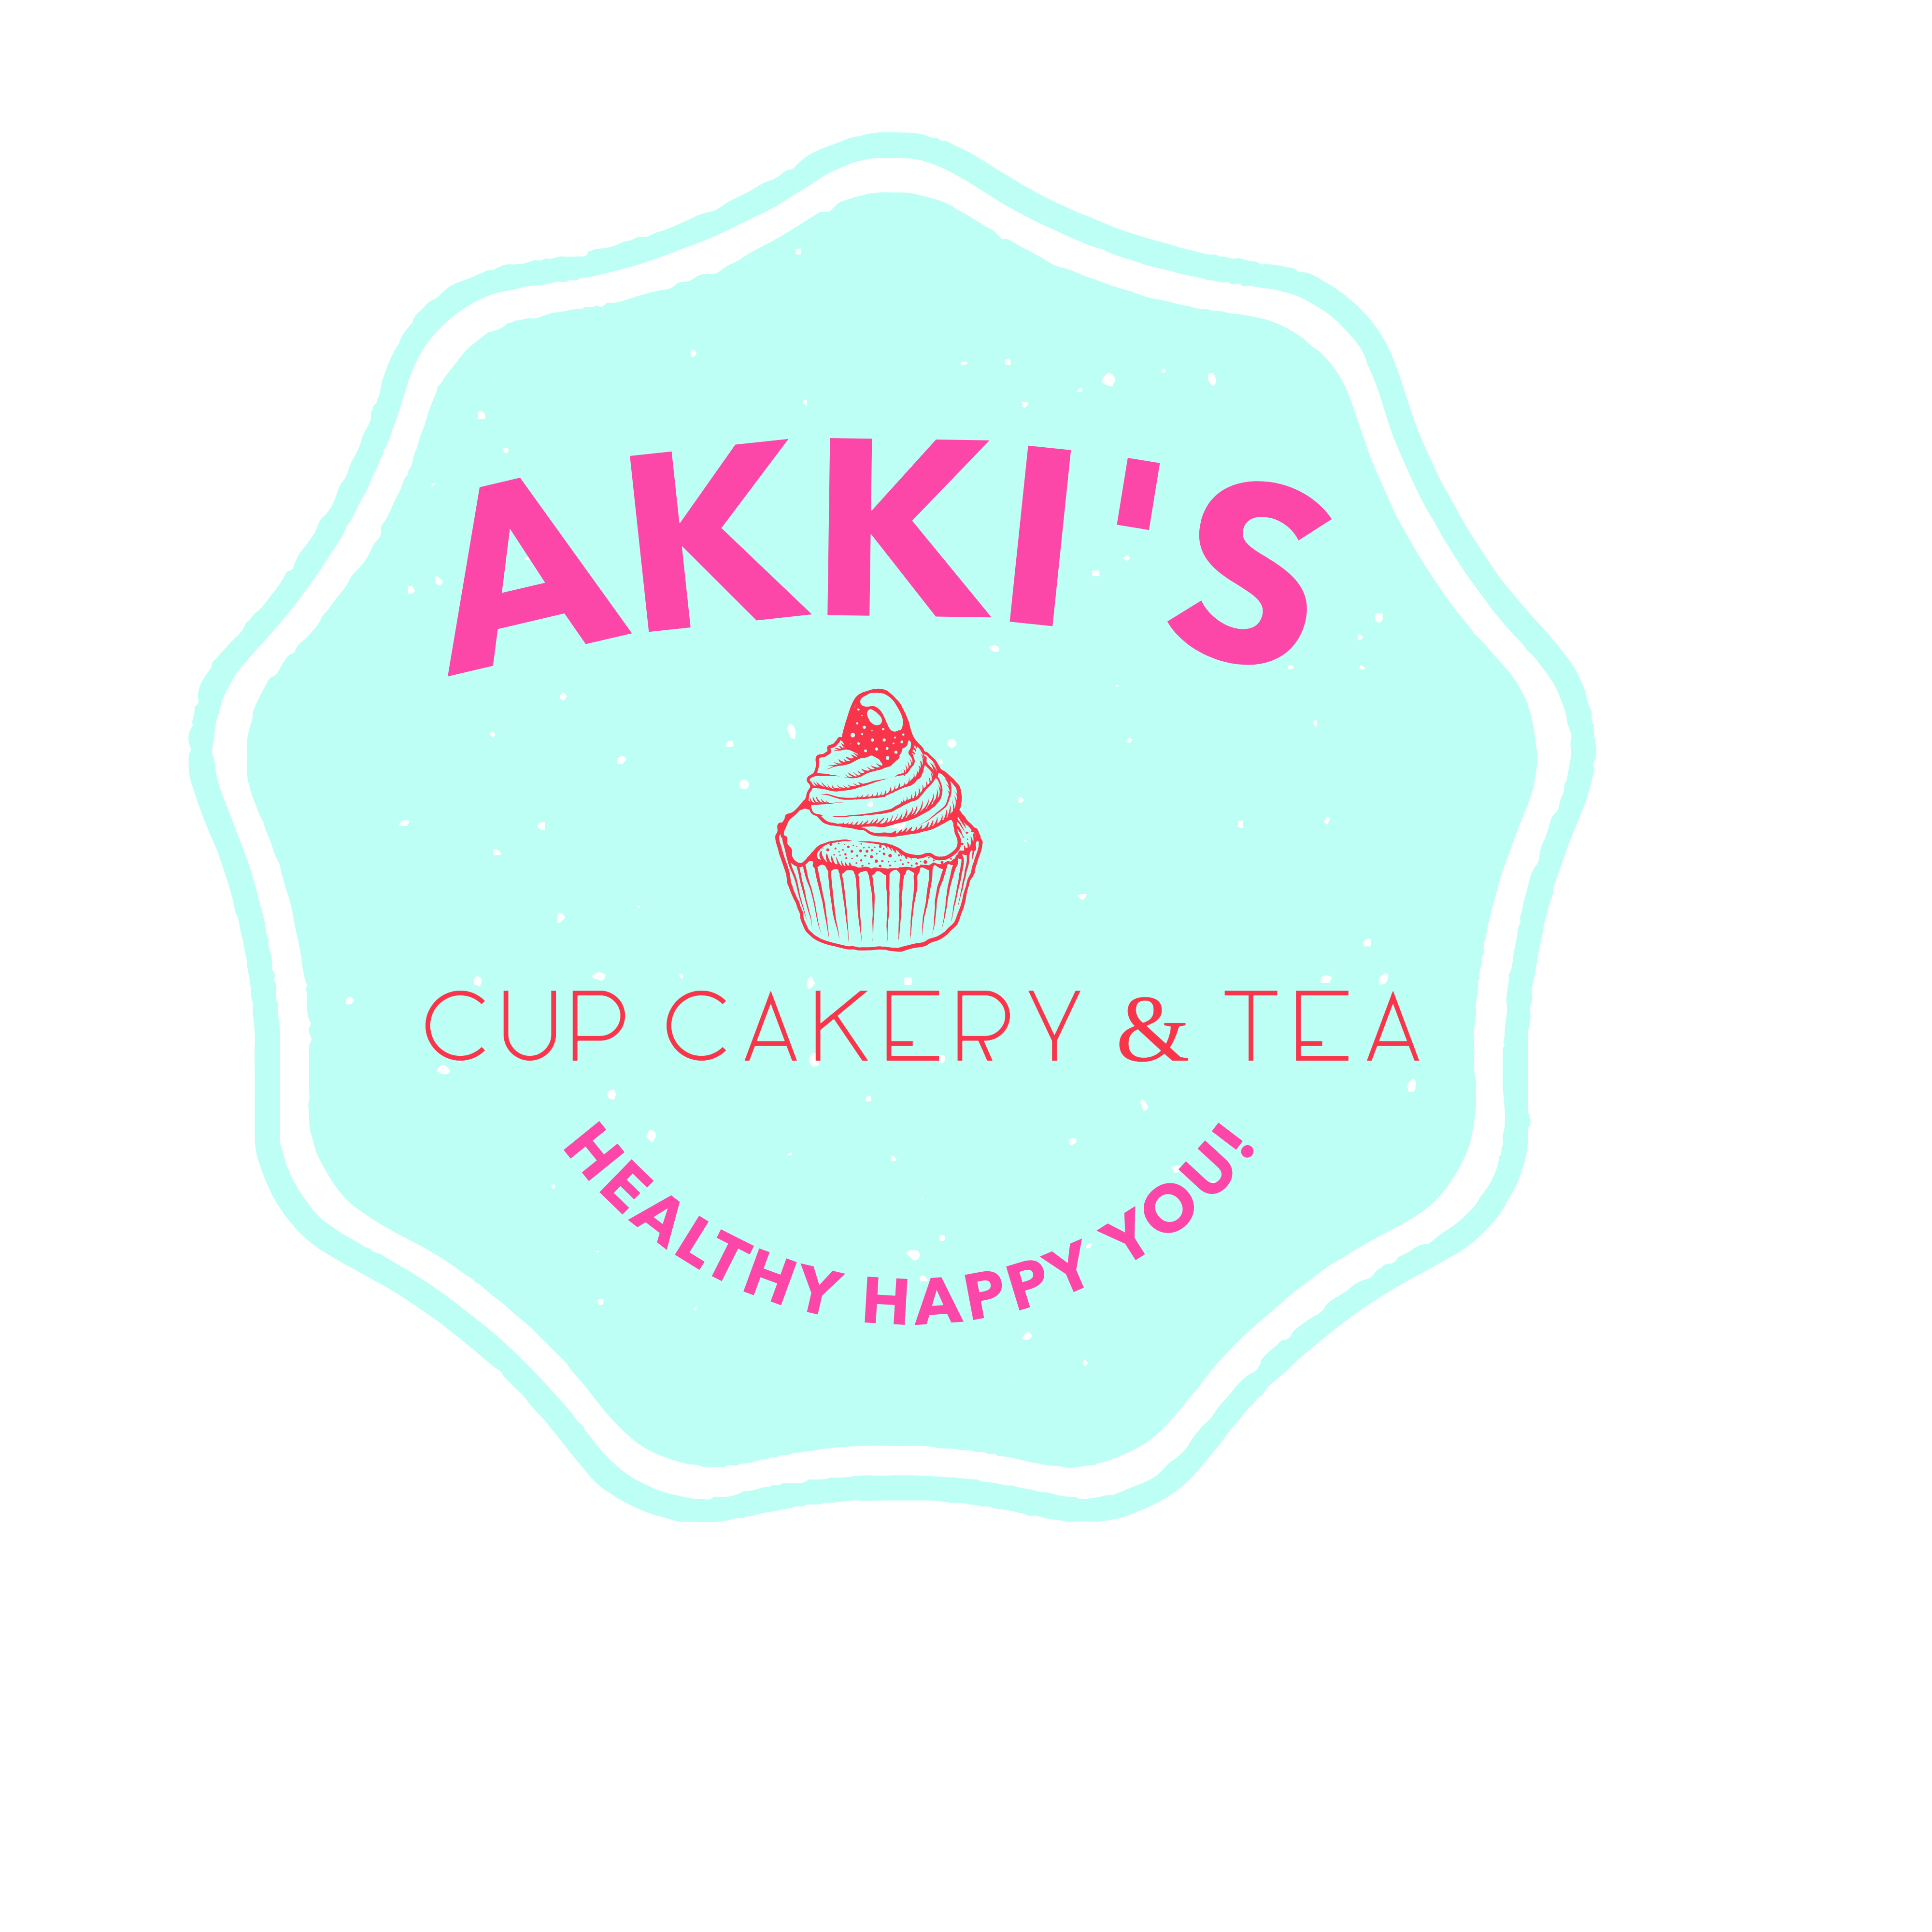 Akki's Cupcakery & Tea is focused on using mostly ORGANIC ingredients for VEGAN, KETO, Paleo and Gluten-FREE Cakes & Cupcakes